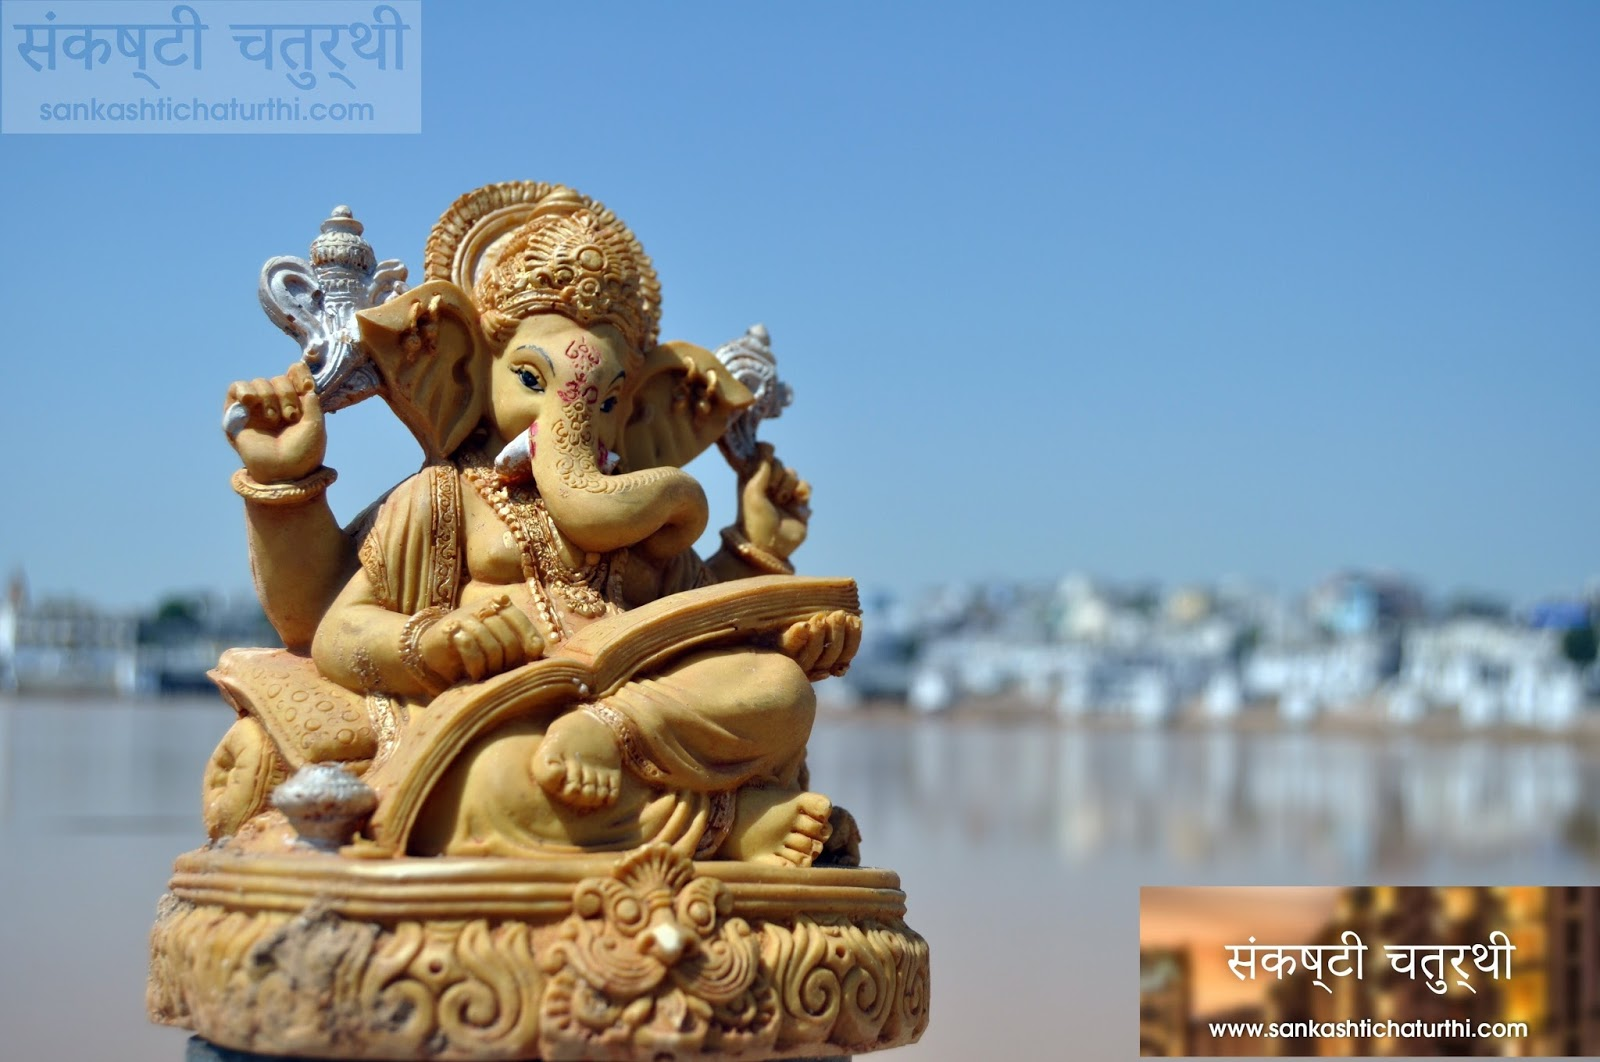 Hd wallpaper ganesh - Ganesha Wallpaper And Images 2017 2016